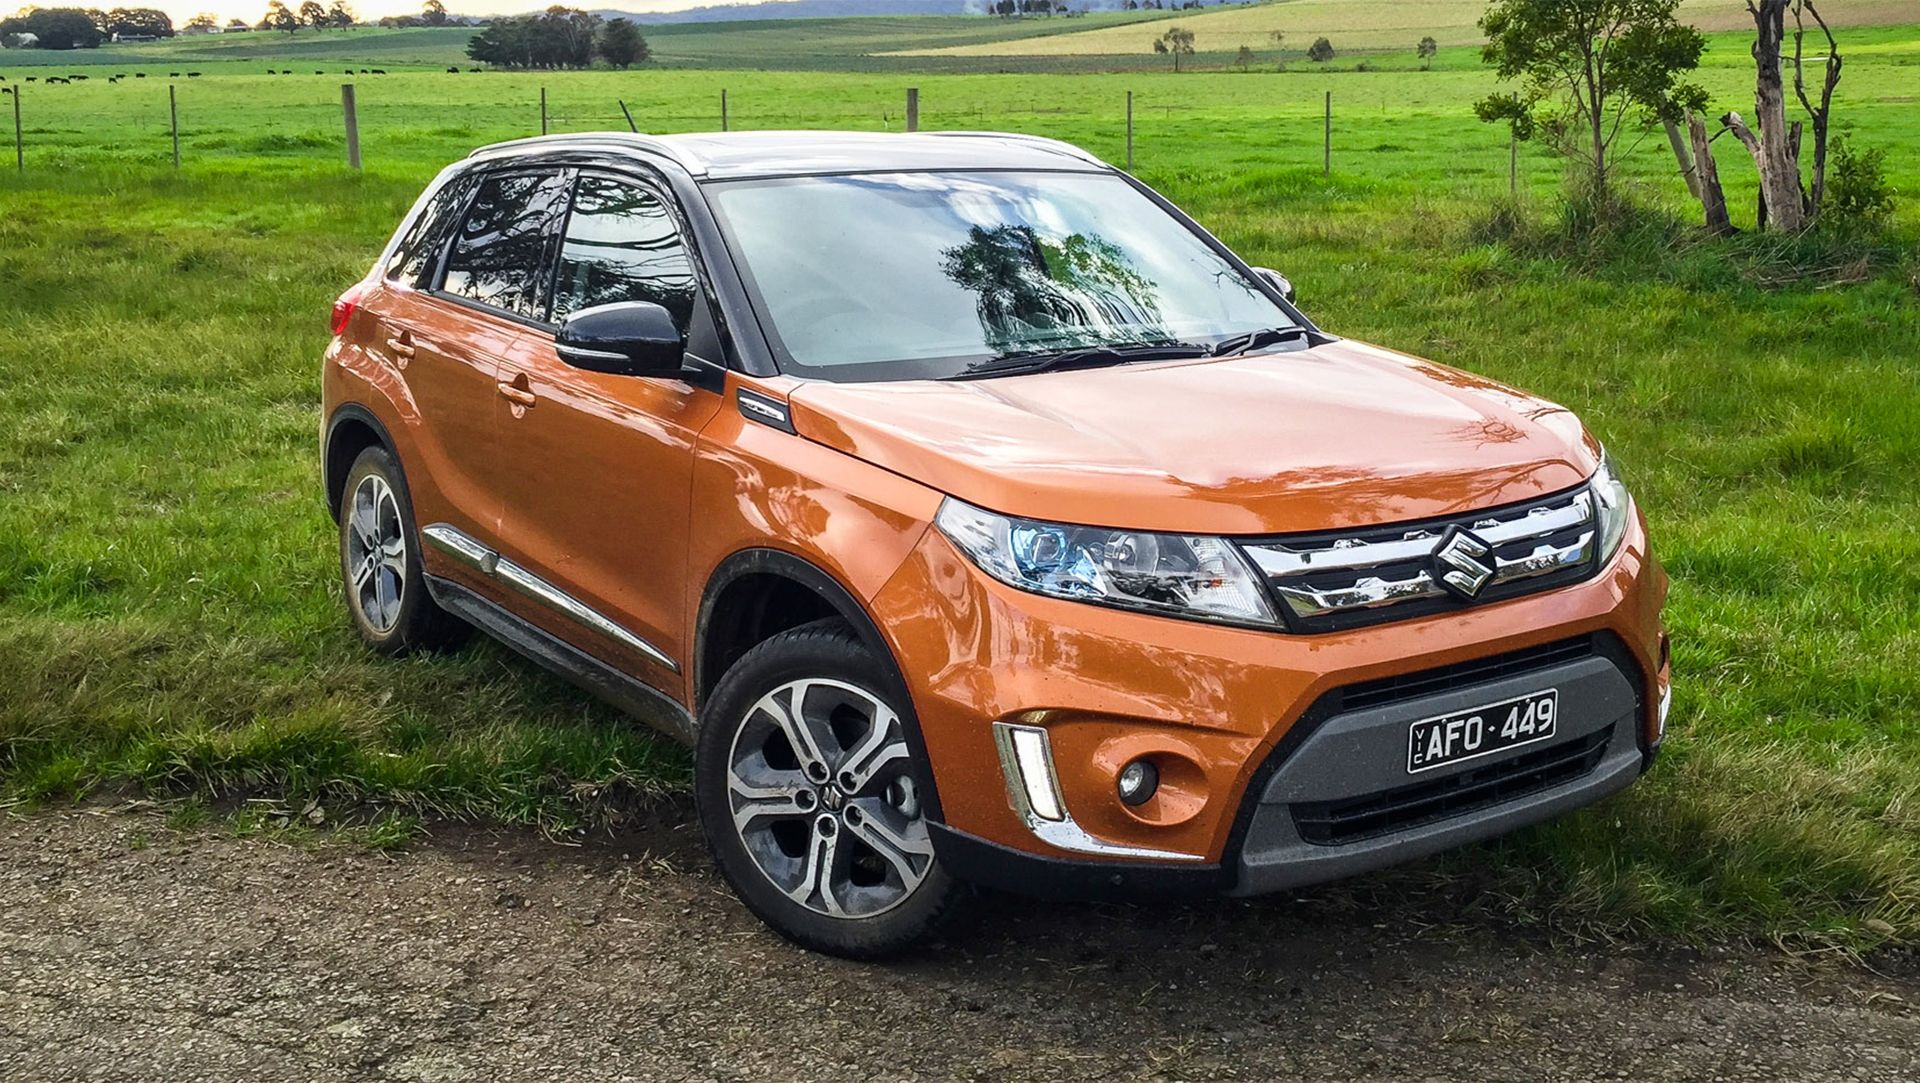 The Suzuki Vitara returns this week to the booming small SUV segment it helped create way back in 1988, armed with interesting design and some very sh...